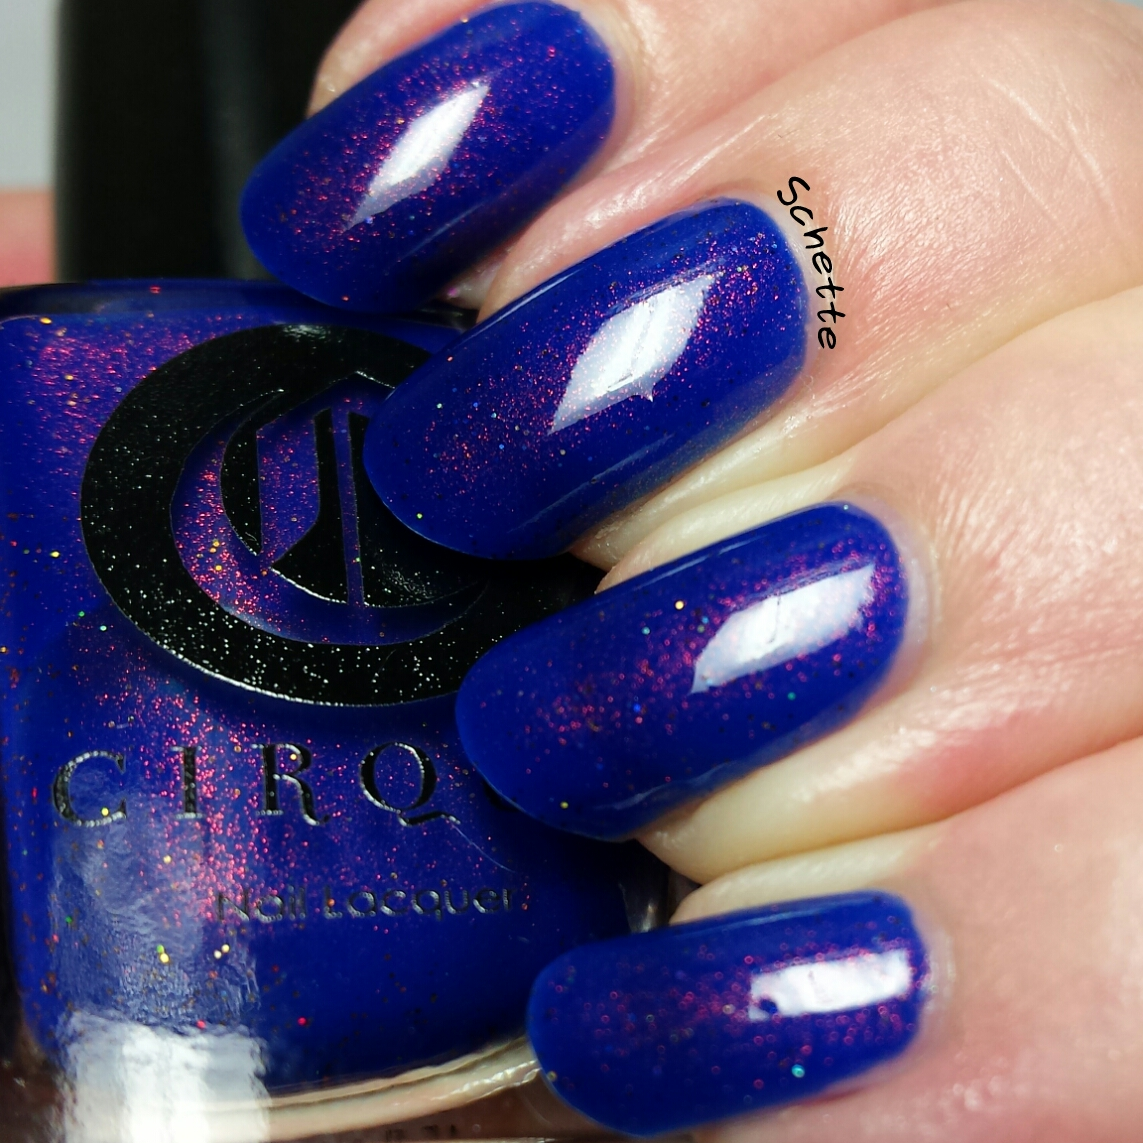 Les vernis Cirque Colors de la collection Kontiki : Midsummer Night, Thicker Than Water, Dear Dahlia